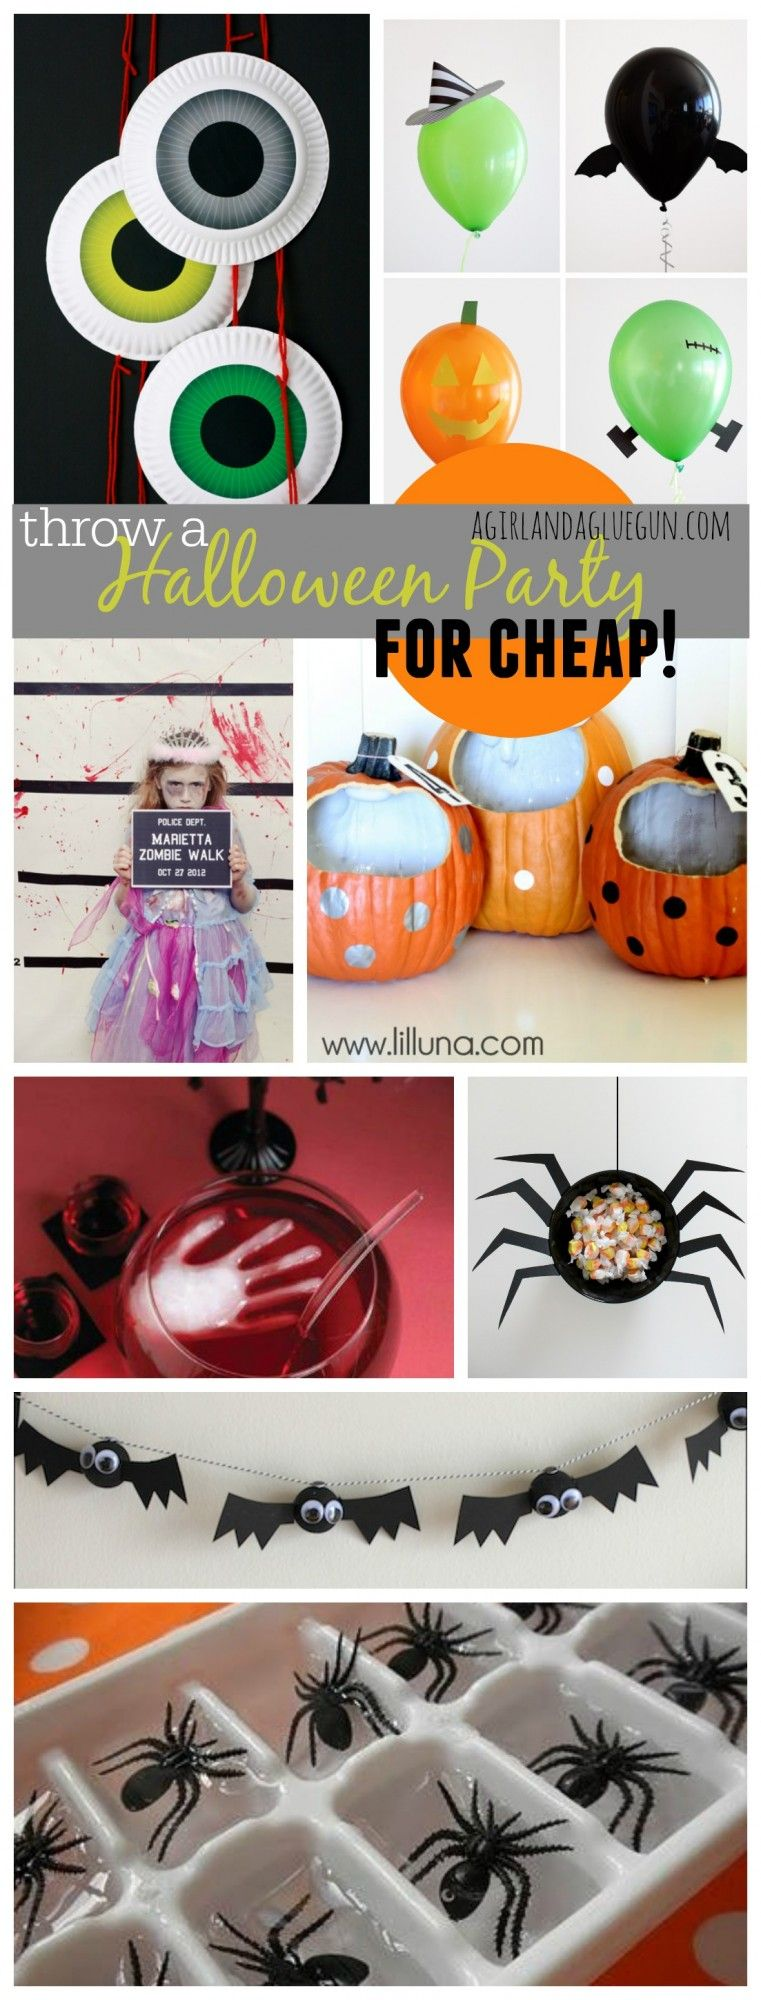 How to throw an EASY Halloween party on the CHEAP | Halloween parties